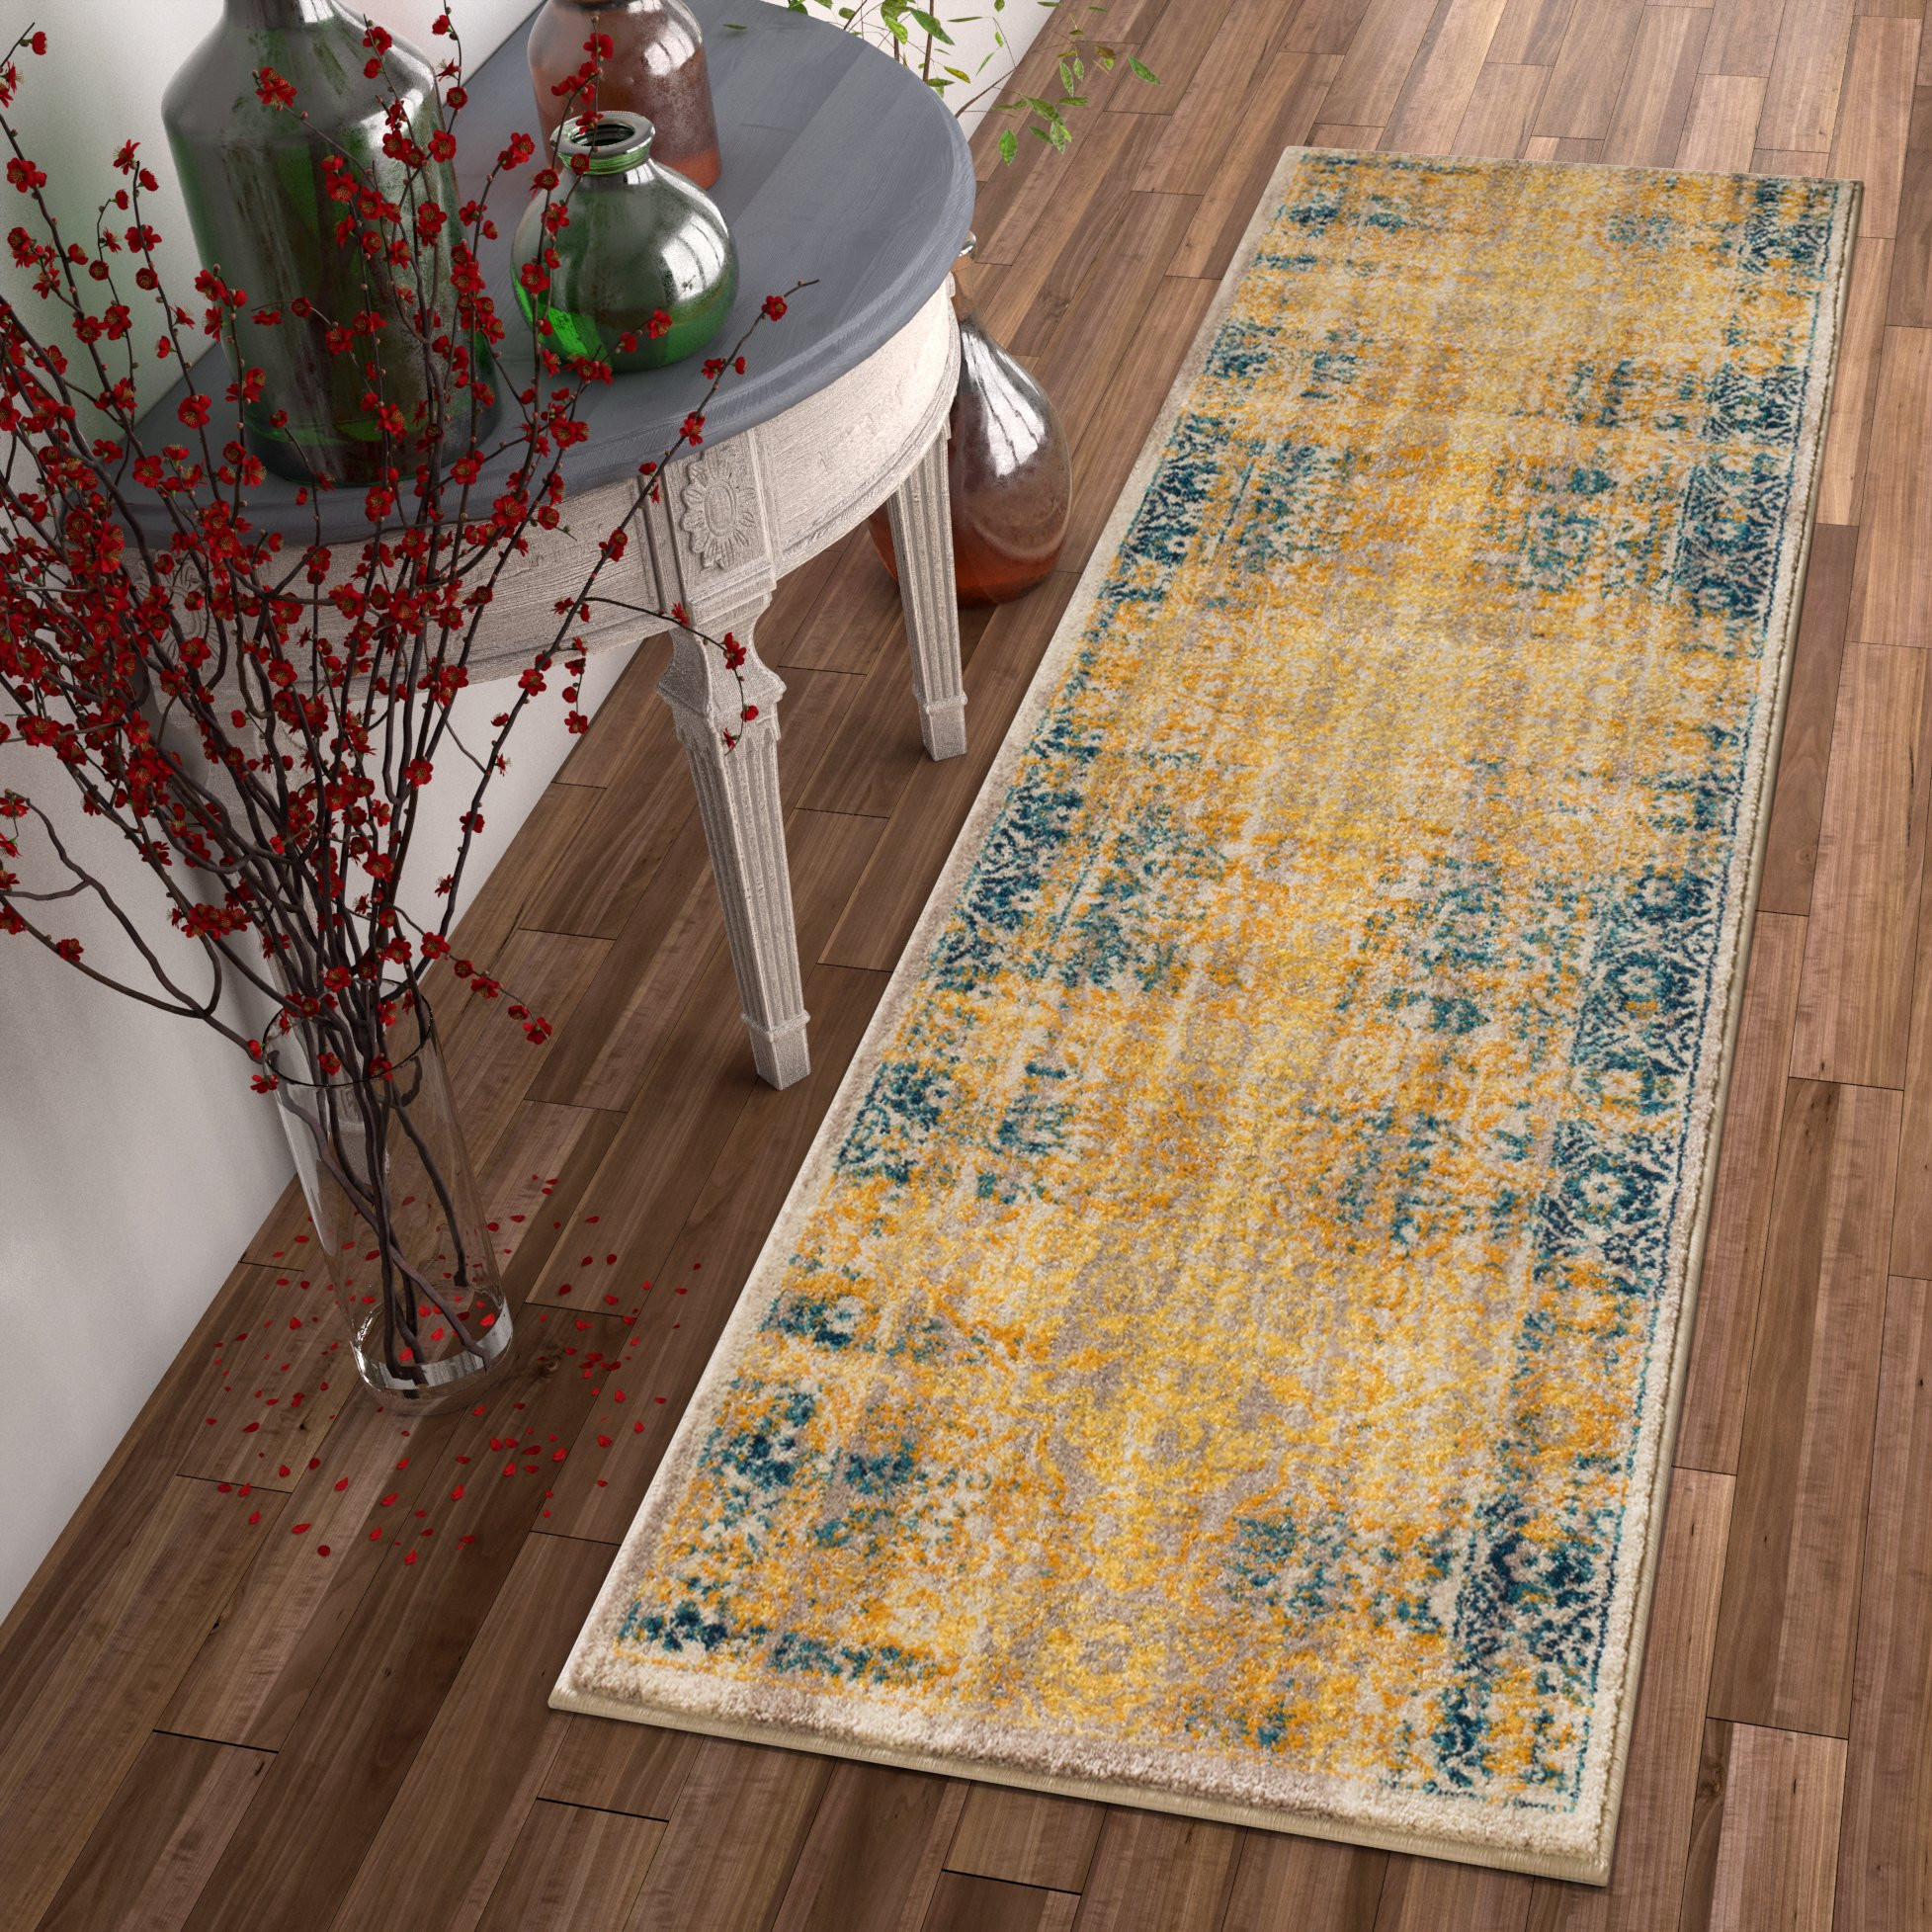 hardwood floor medallion store of well woven bohemian vintage yellow runner rug 23 x 73 free regarding well woven bohemian vintage yellow runner rug 23 x 73 free shipping today overstock com 24115614